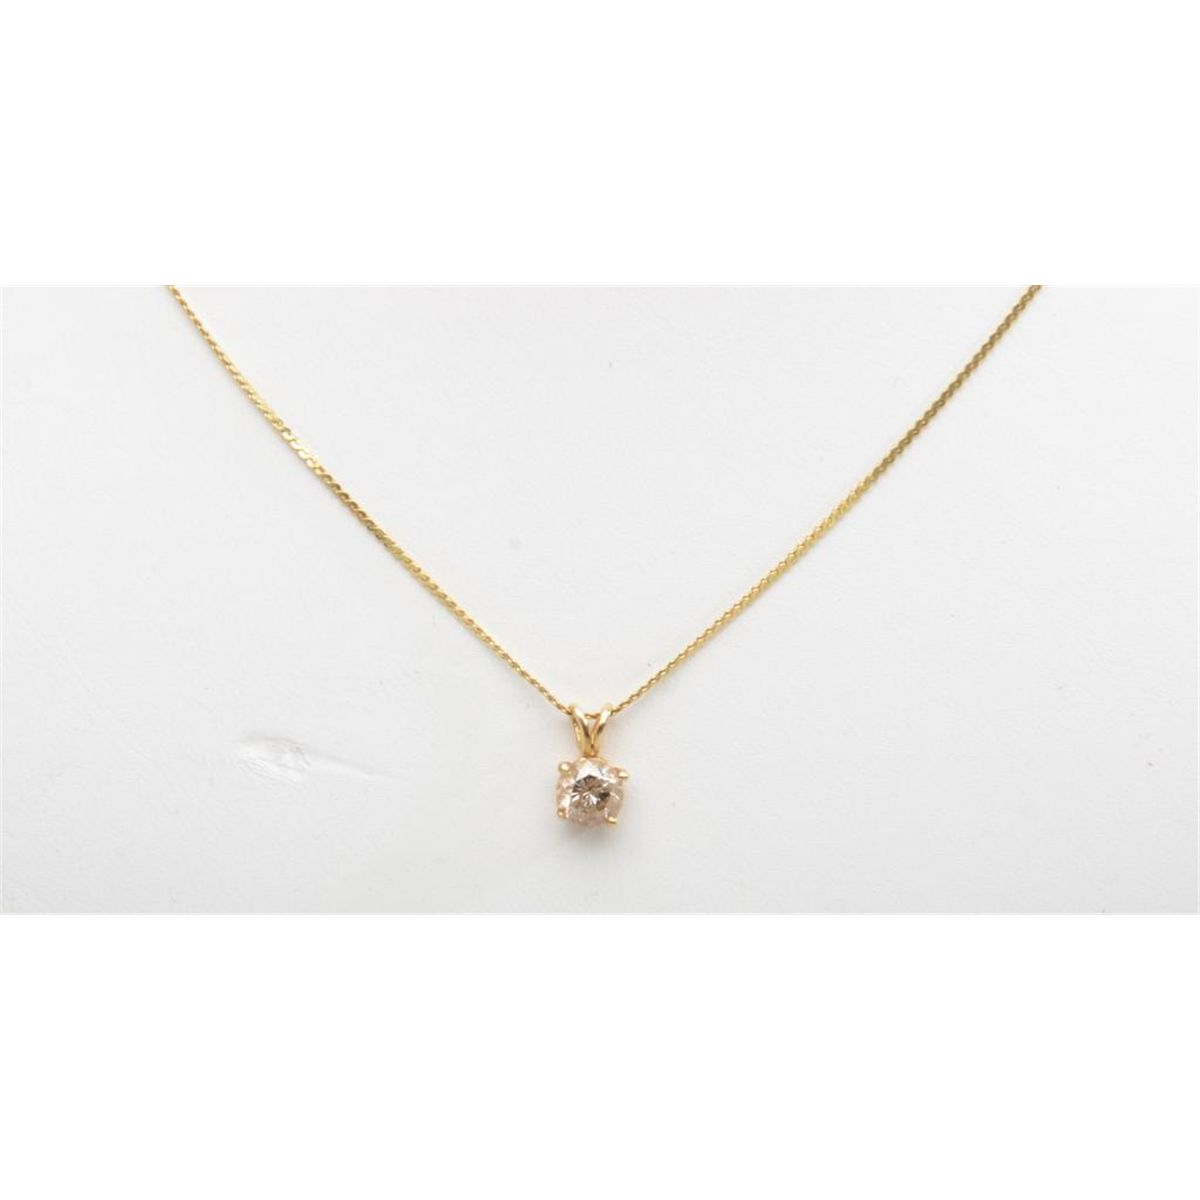 Gold gold chain designs for girls gold pendant designs diamond pendant on gold chain mozeypictures Images